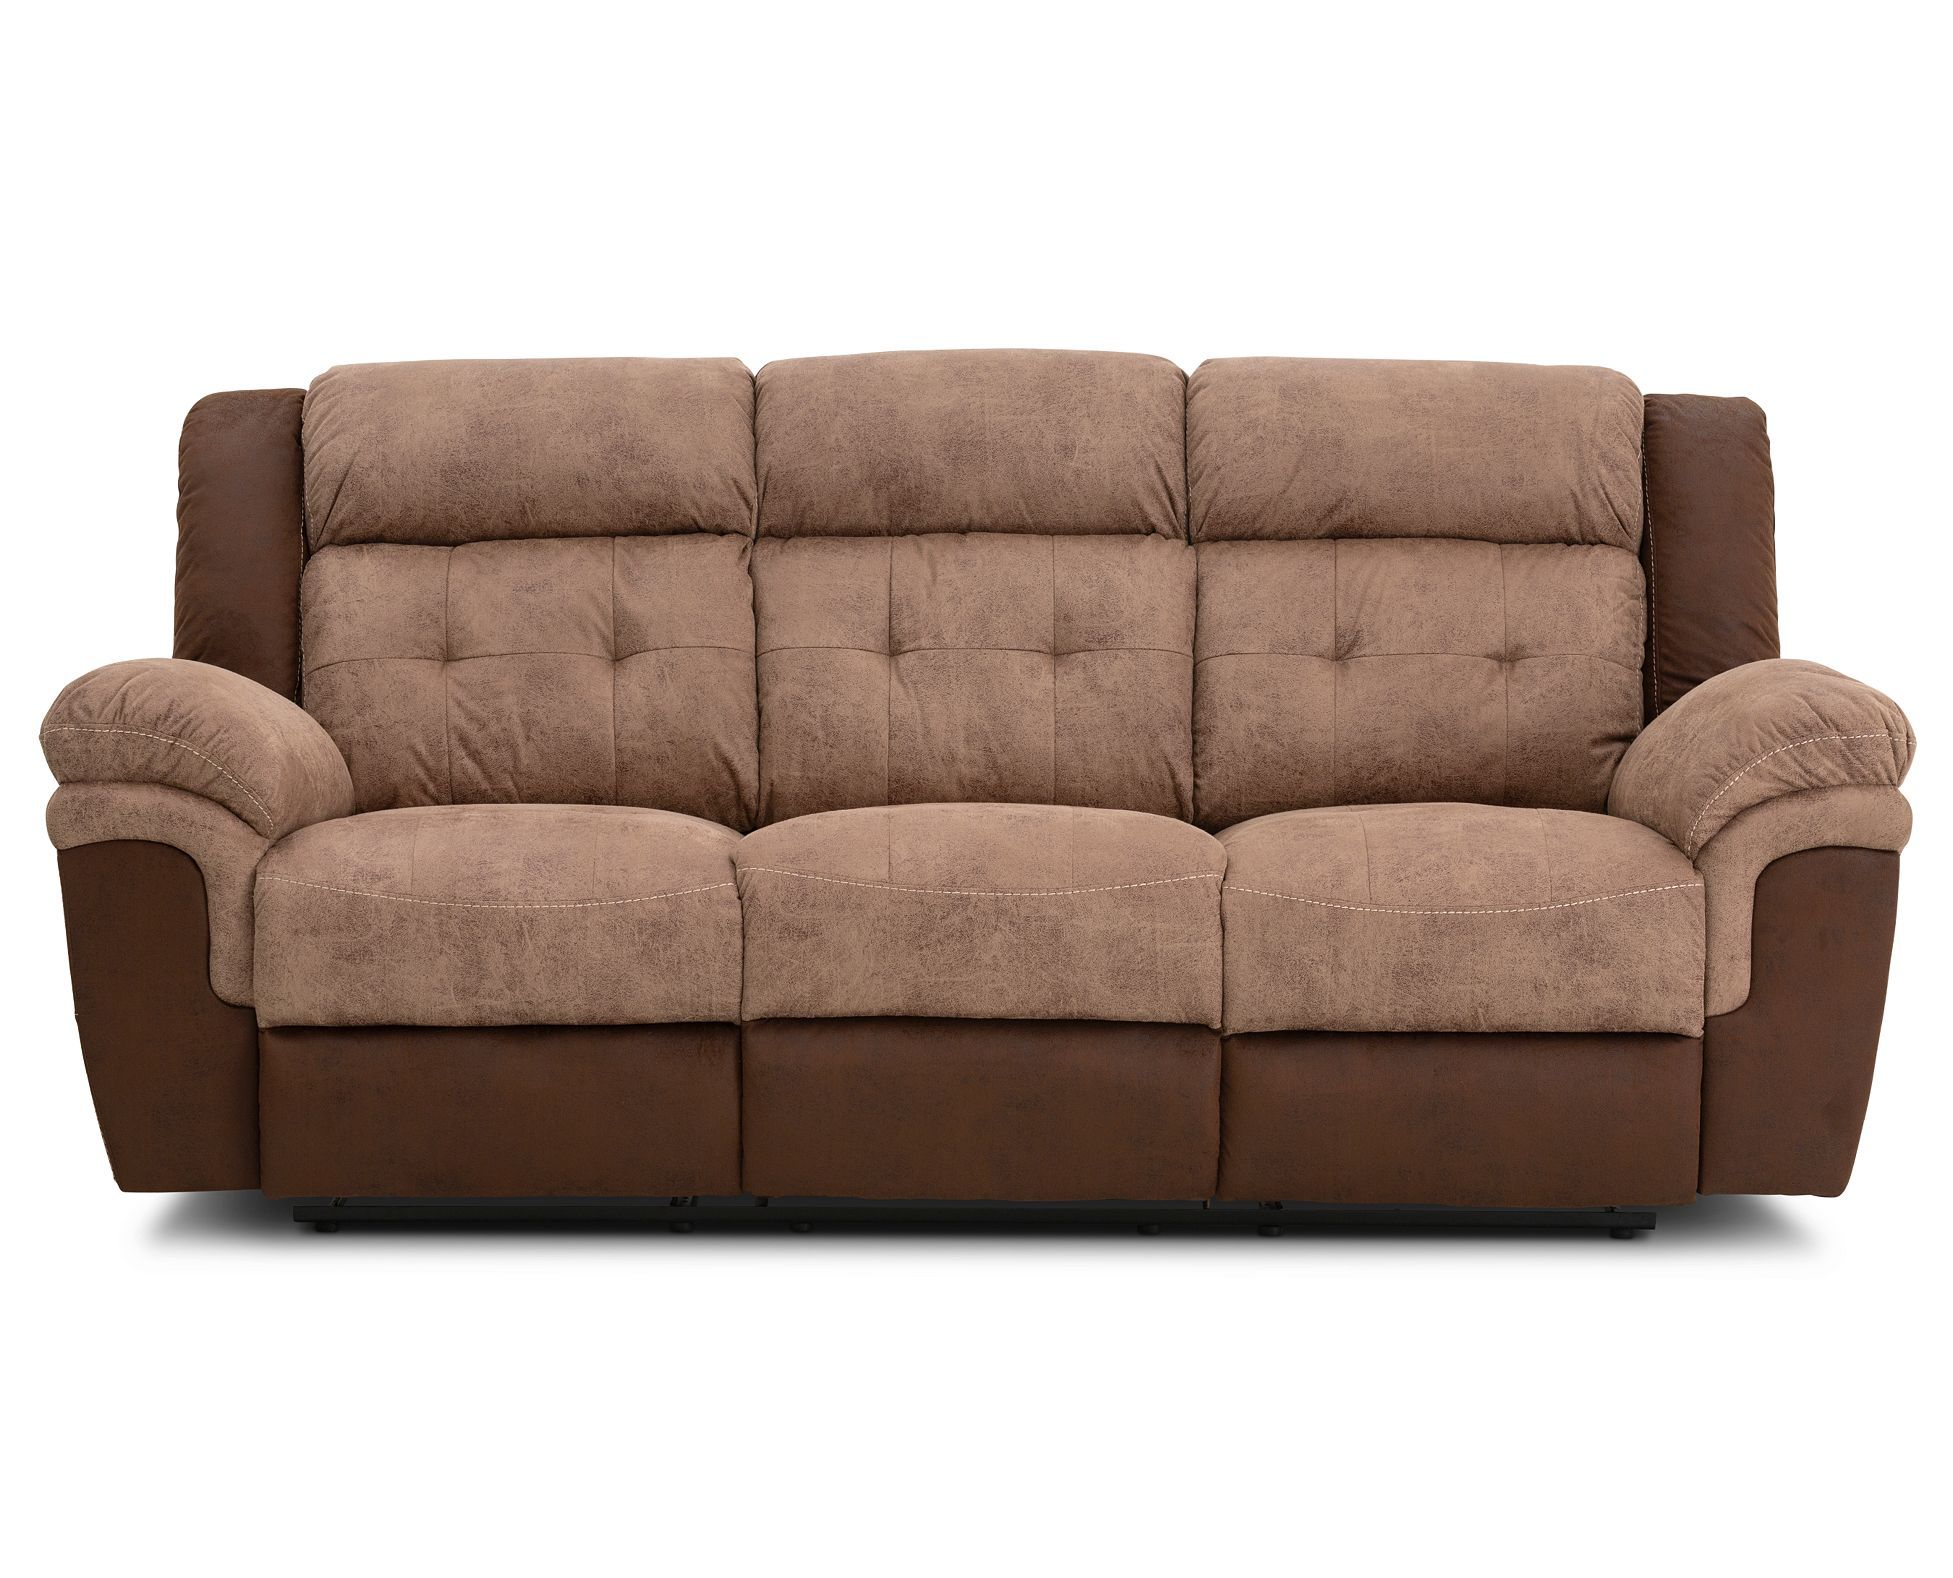 Upholstered In Two Tone Brown And Tan Fabric The Overstuffed And